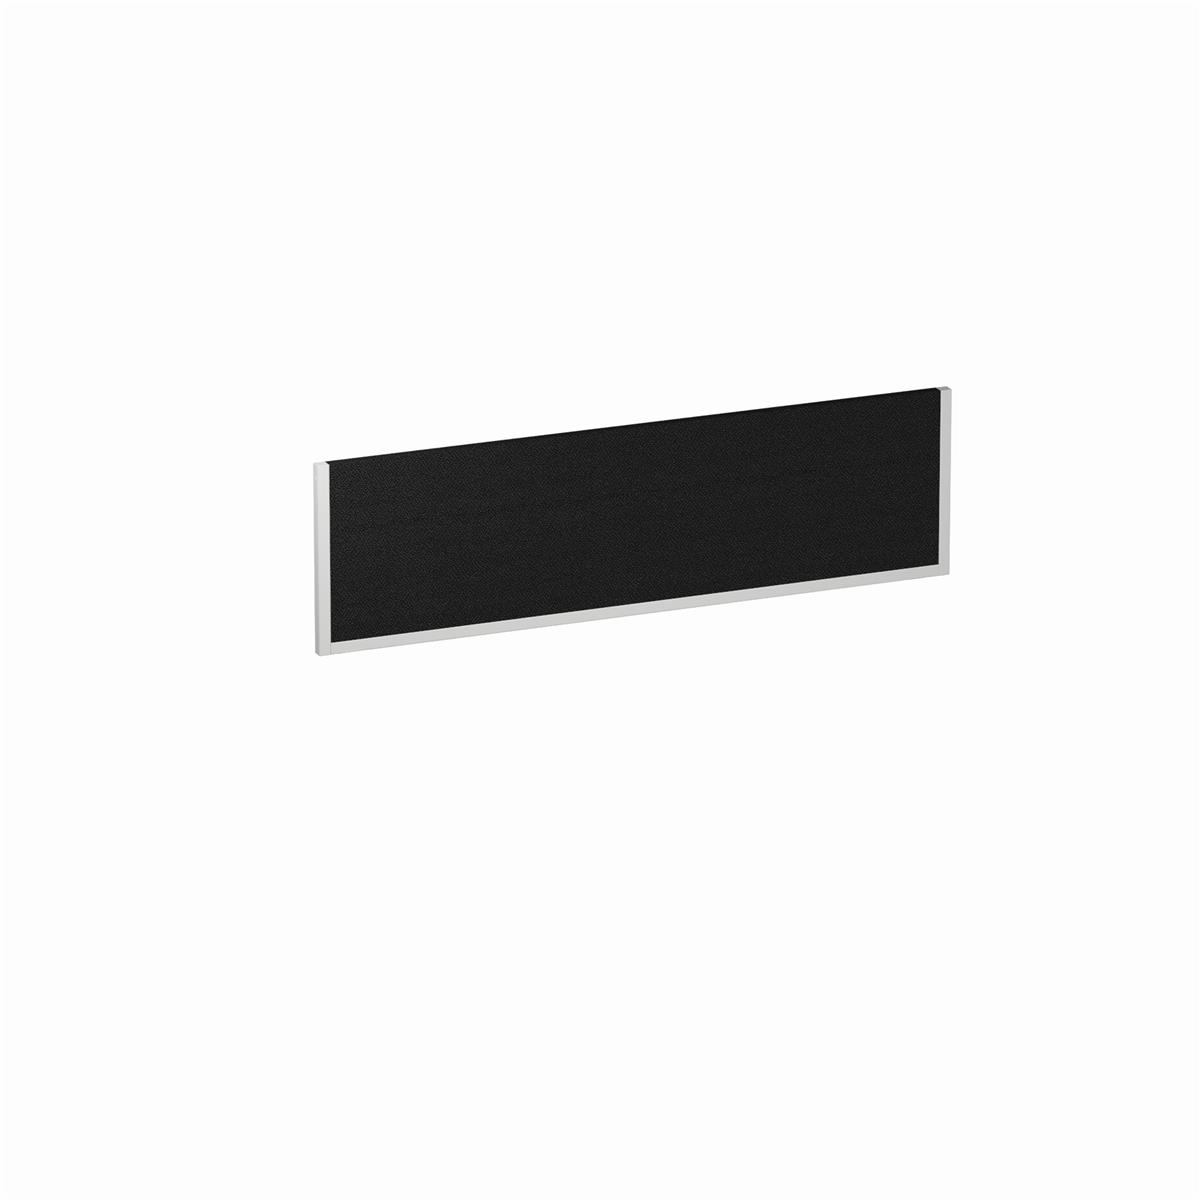 Image for Trexus Desk Screen 1200mm Black with White Frame